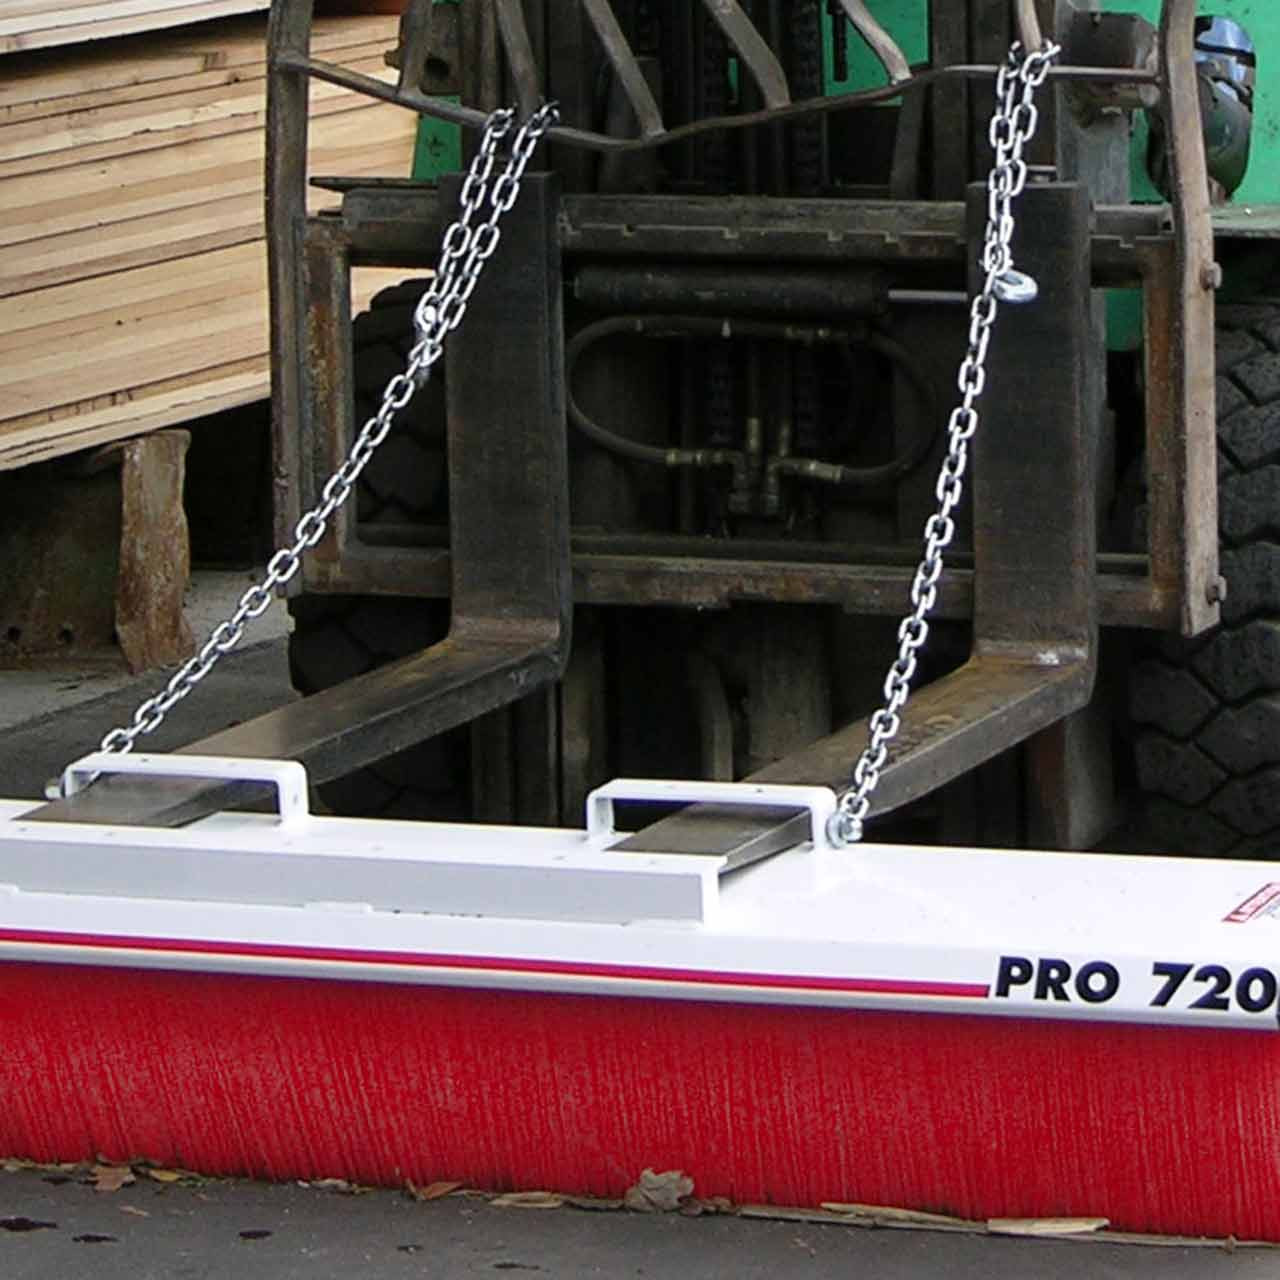 Forklift Mounted Broom - Pro Series With Chains Attached